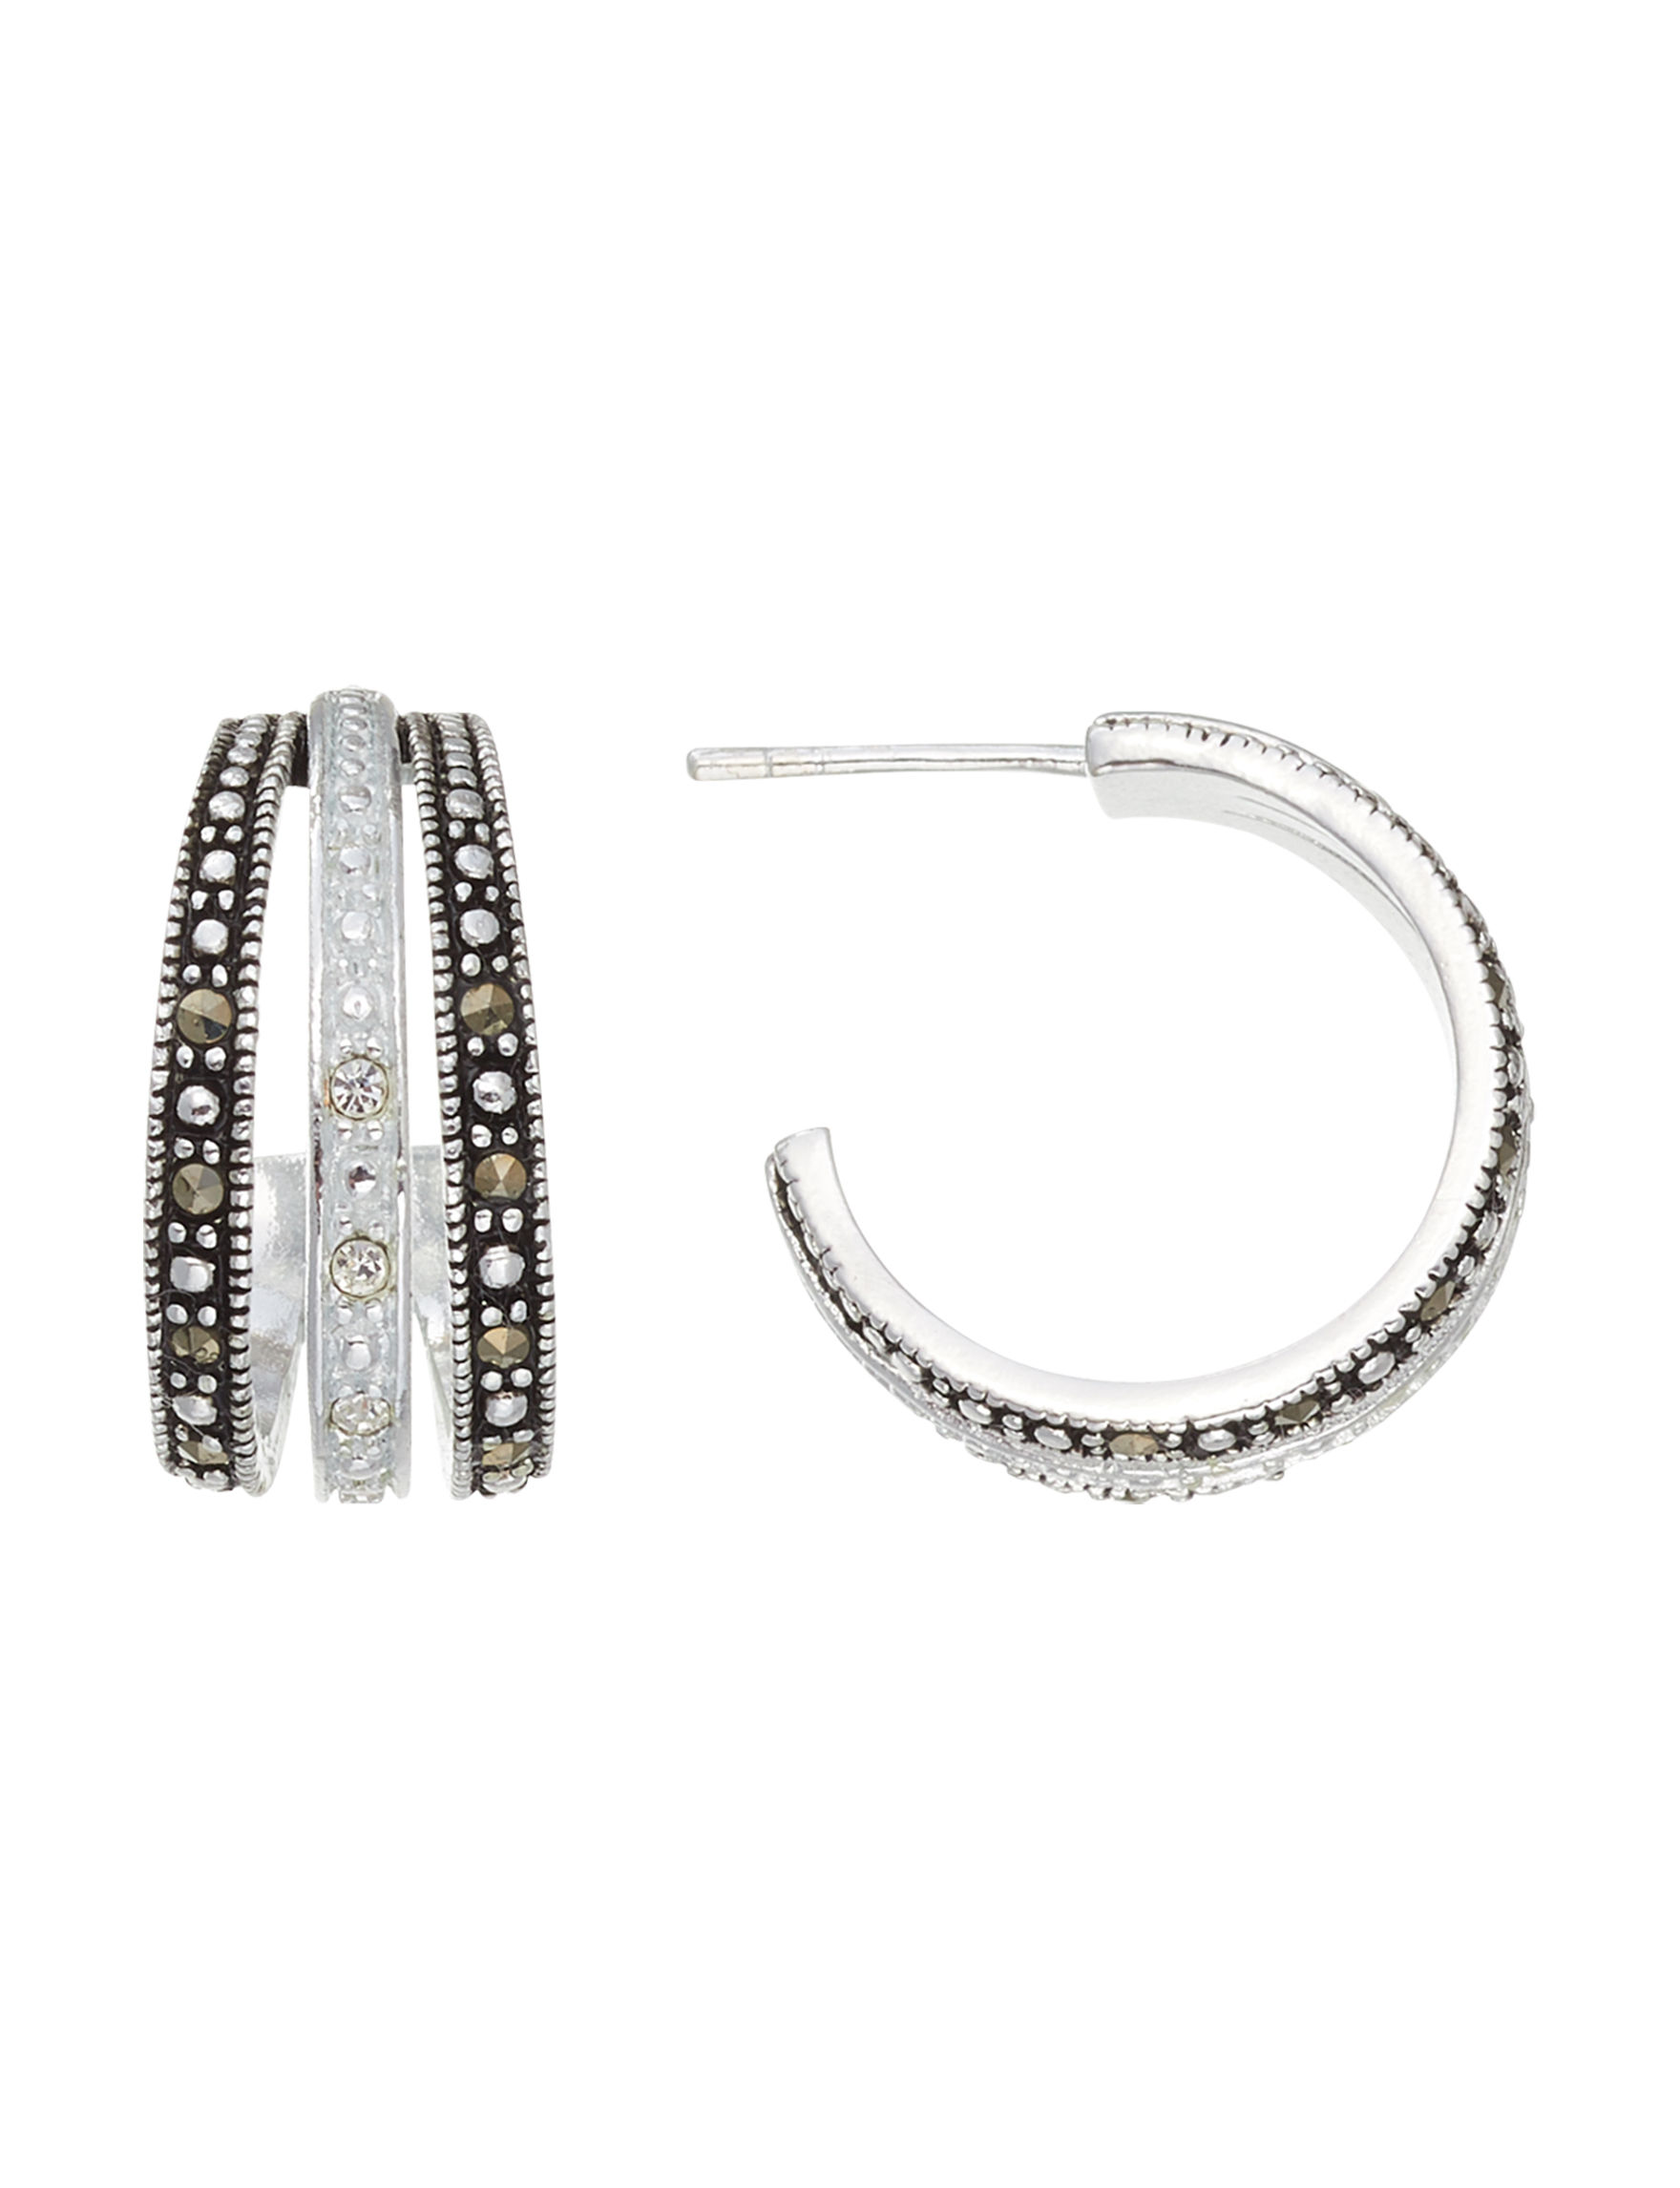 Marsala Marcasite / Crystal Hoops Earrings Fine Jewelry